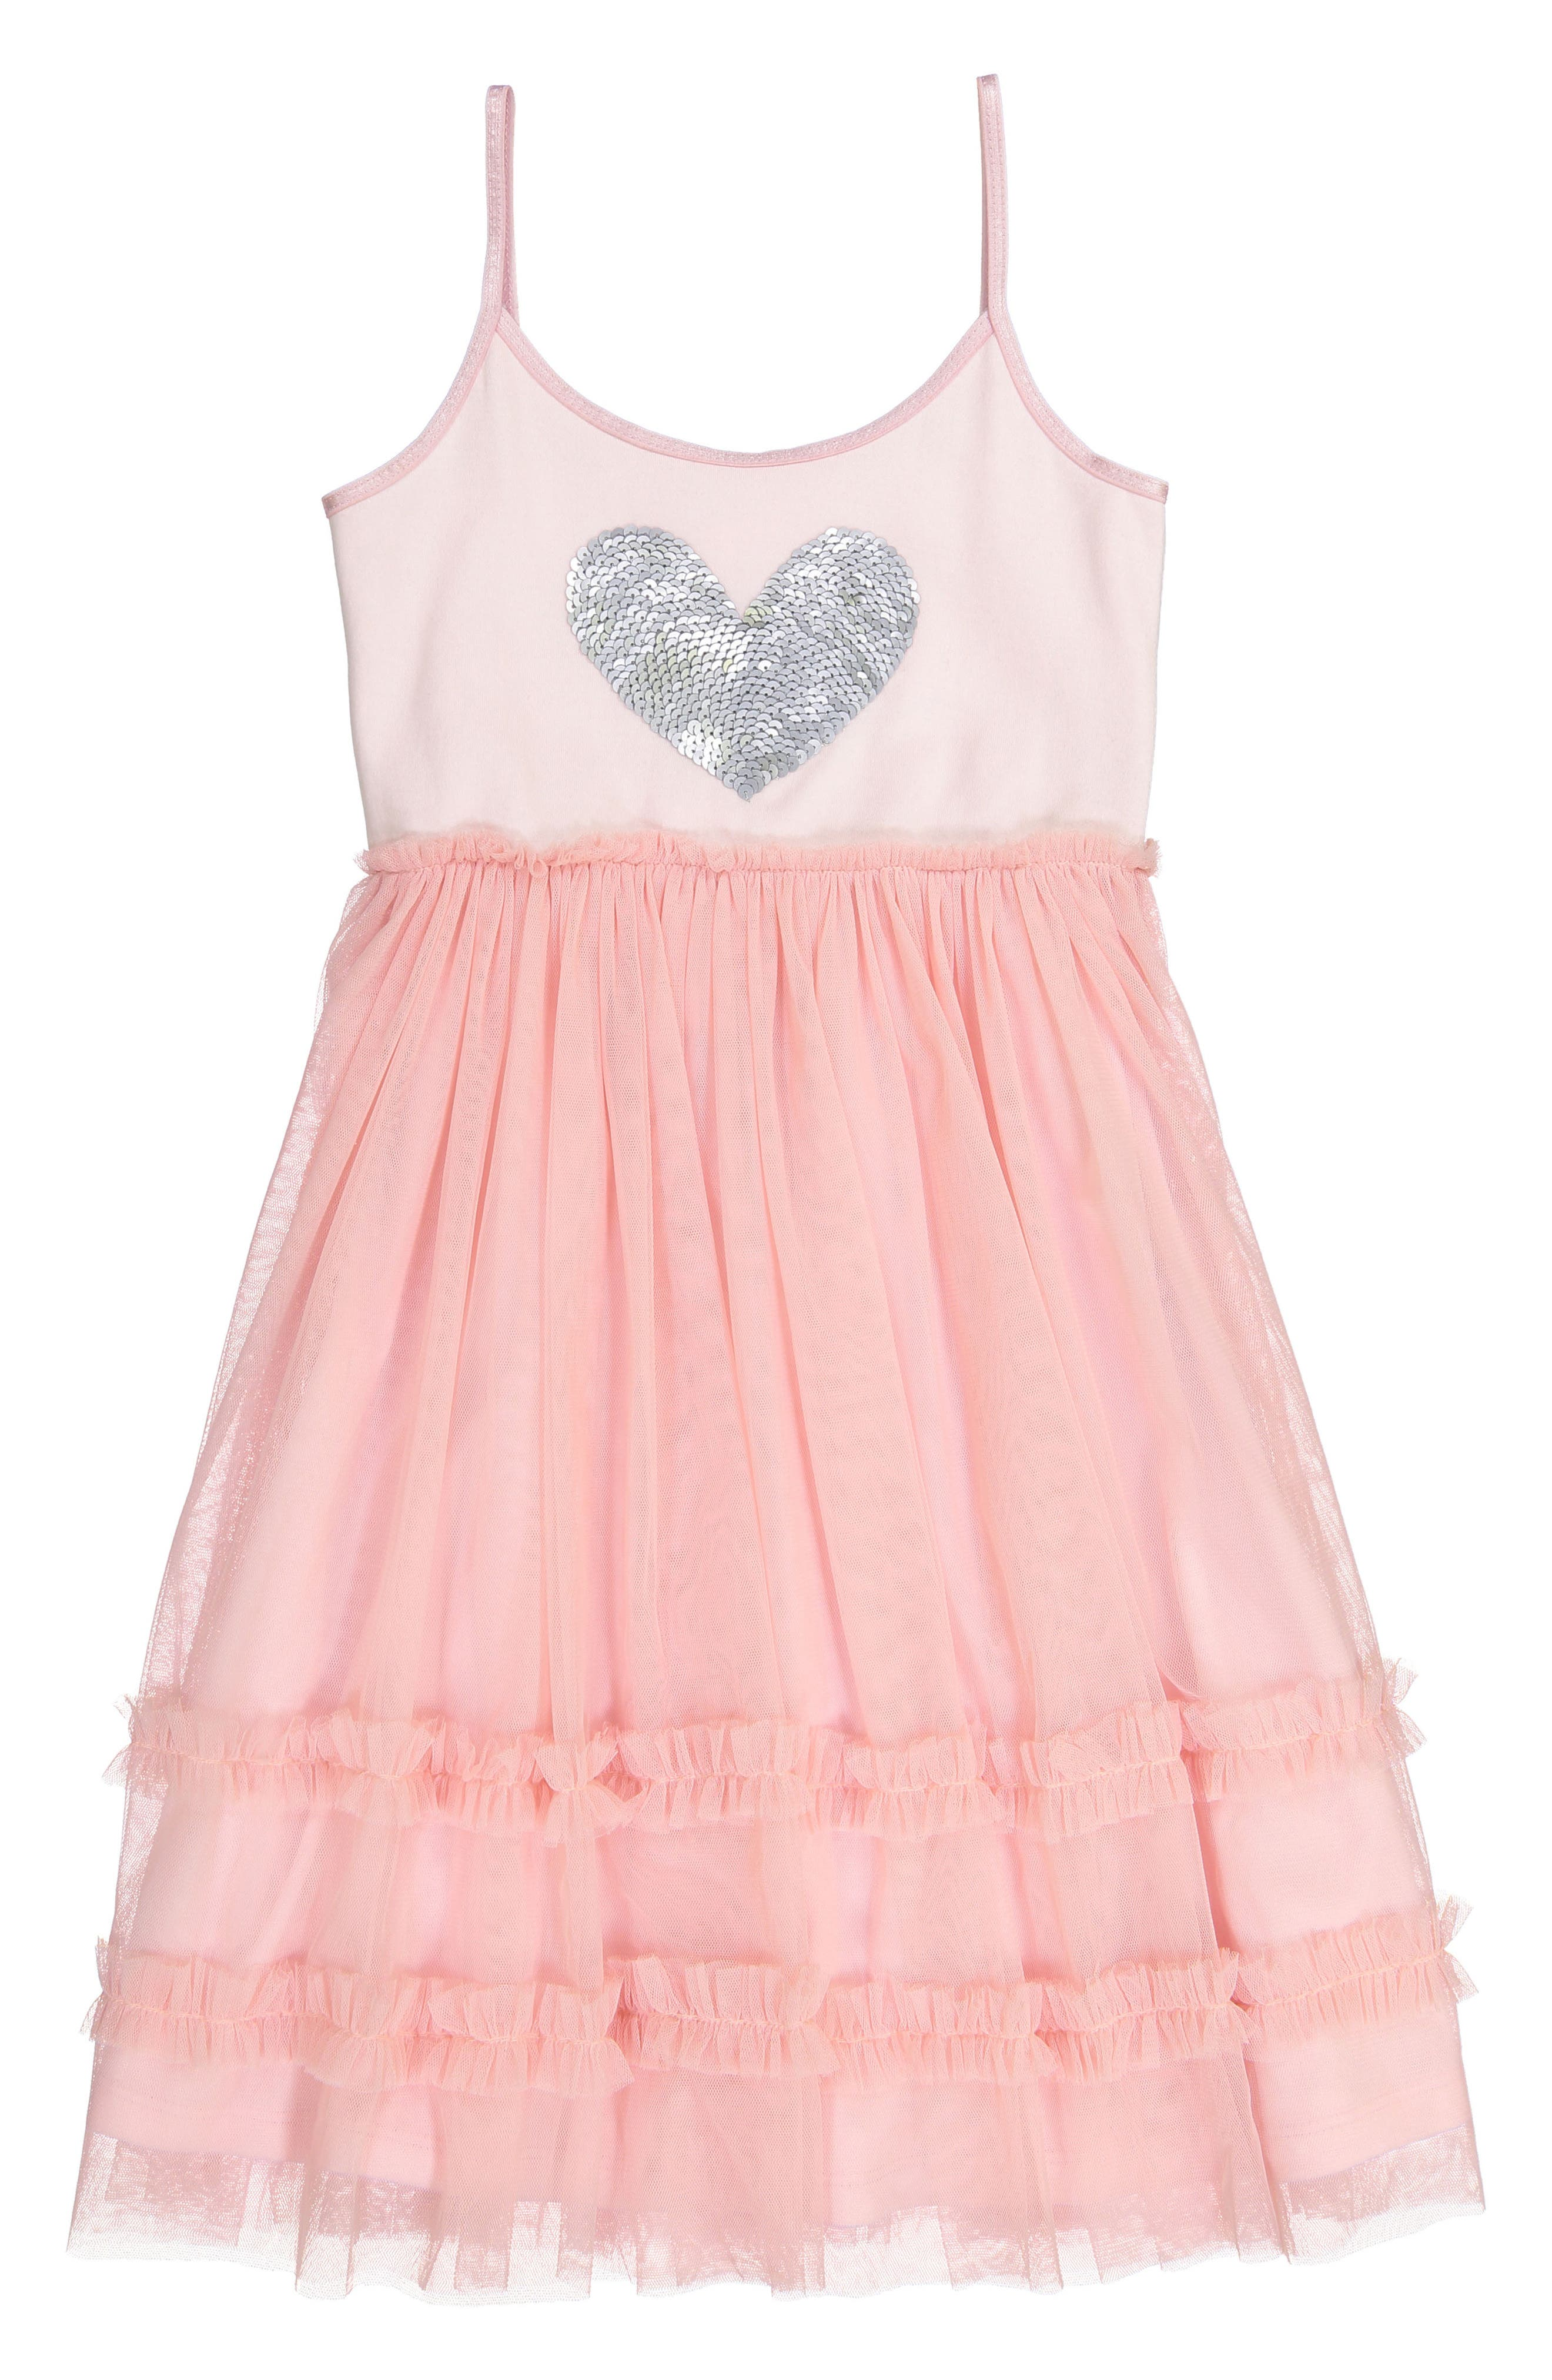 Sequin Heart Dress with Tulle Skirt,                         Main,                         color, Blush